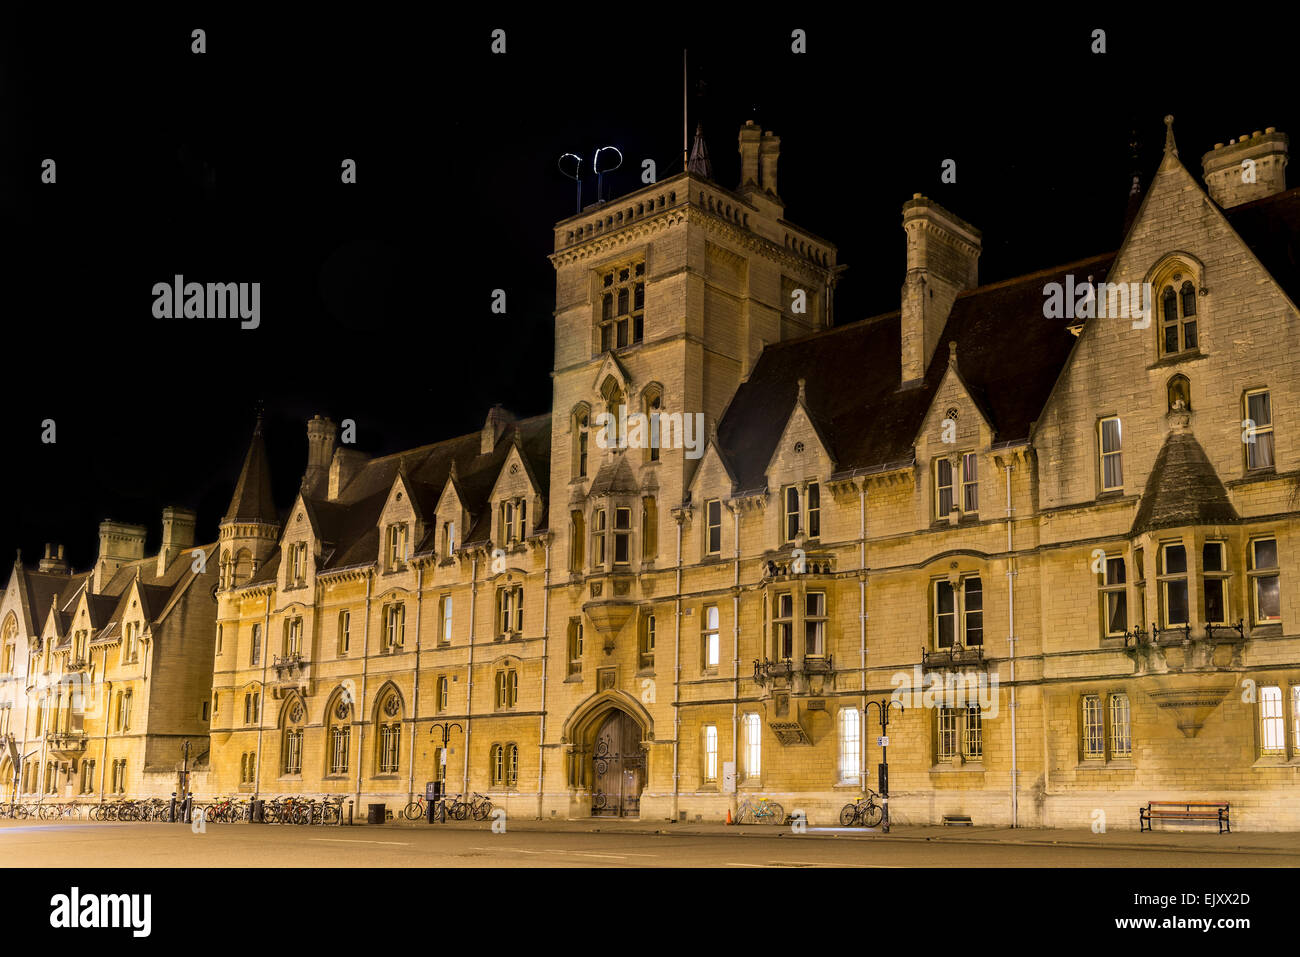 Balliol College, seen here lit up at night is an undergraduate college and part of Oxford University, Oxford, UK - Stock Image